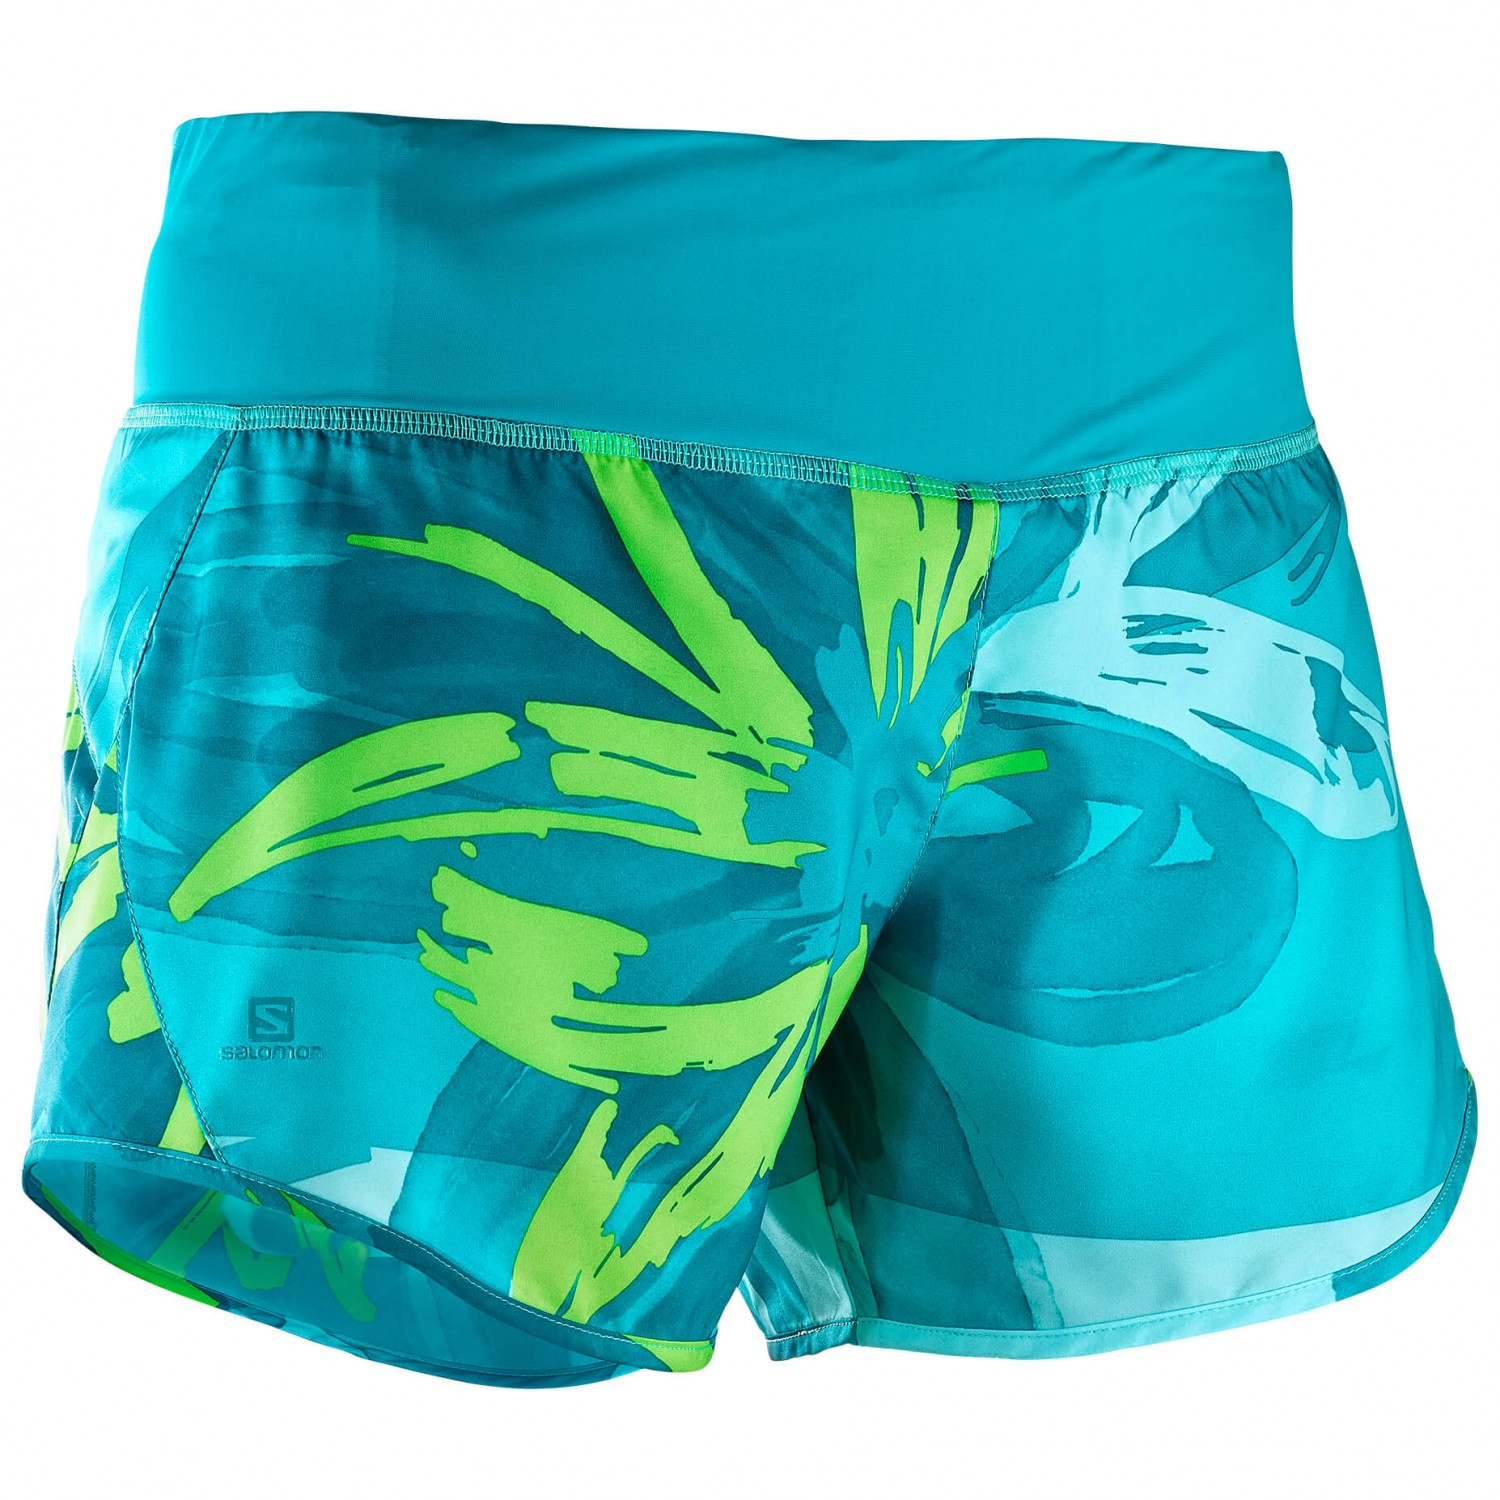 Shorts Short Women's Elevate 2in1 Salomon YH7Oq7